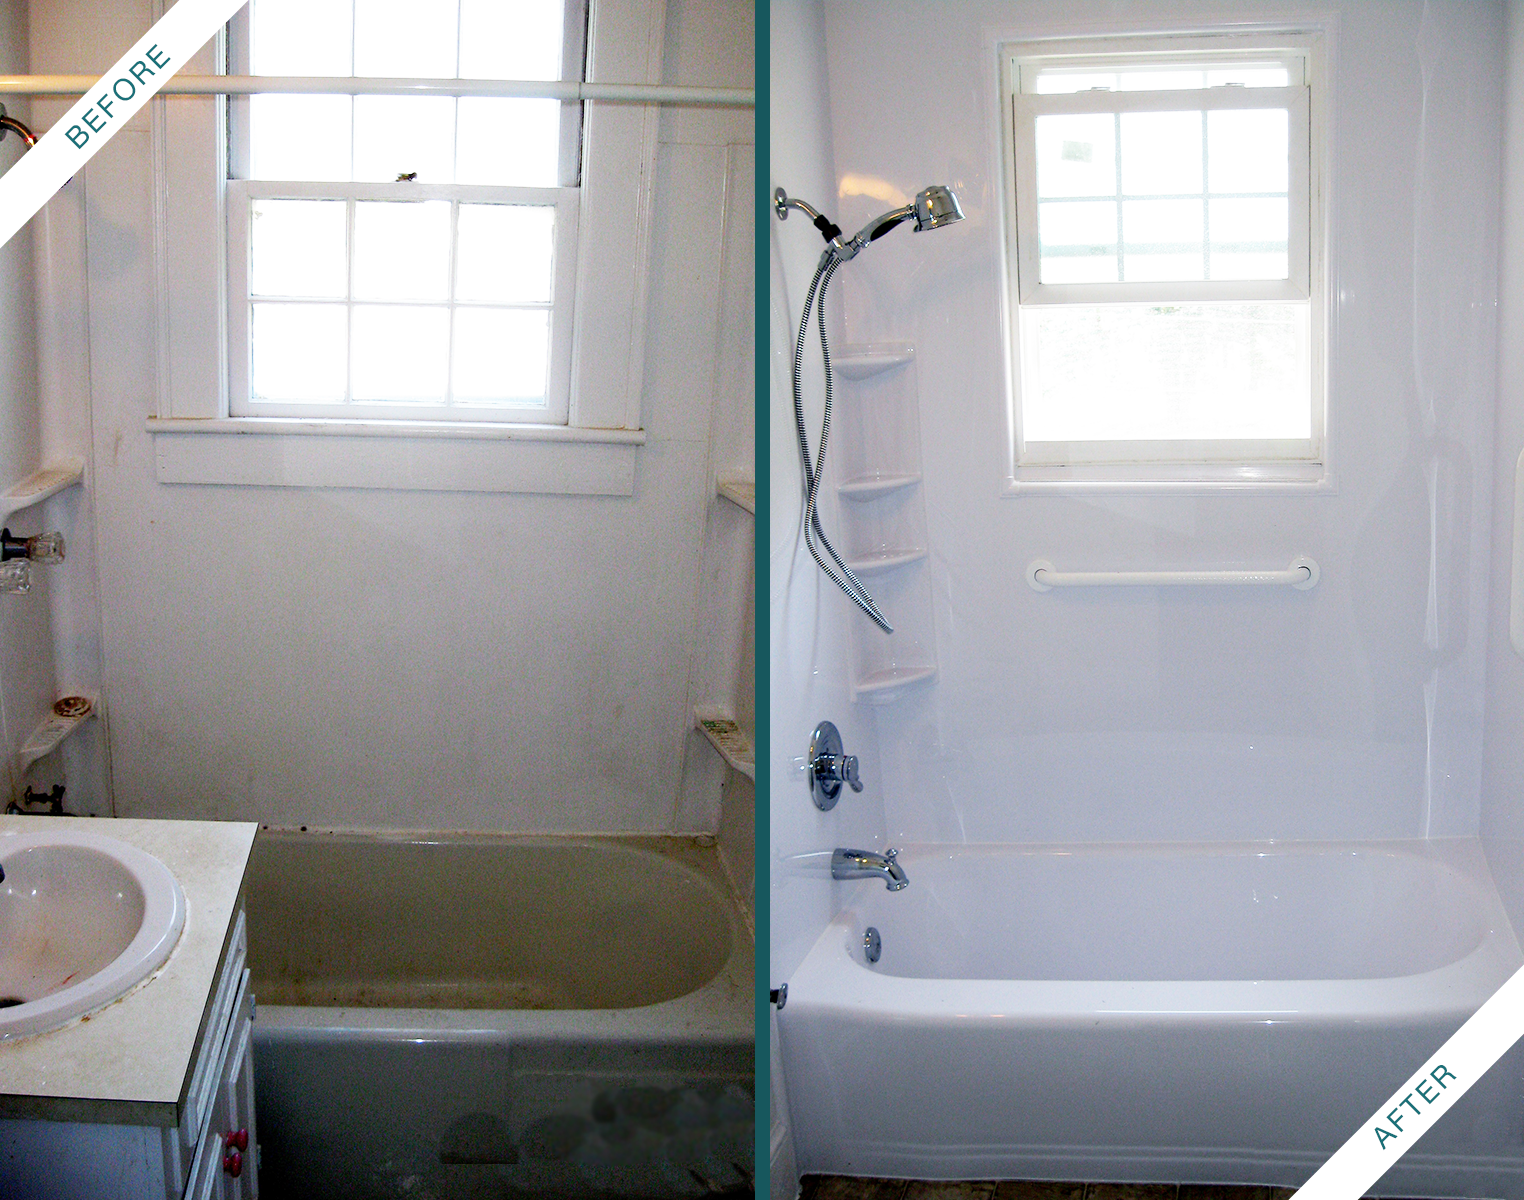 Bathroom Remodeling Acrylic Bathtubs And Showers Bath Fitter Bathroom Renovation Shower Bath Fitter Cost